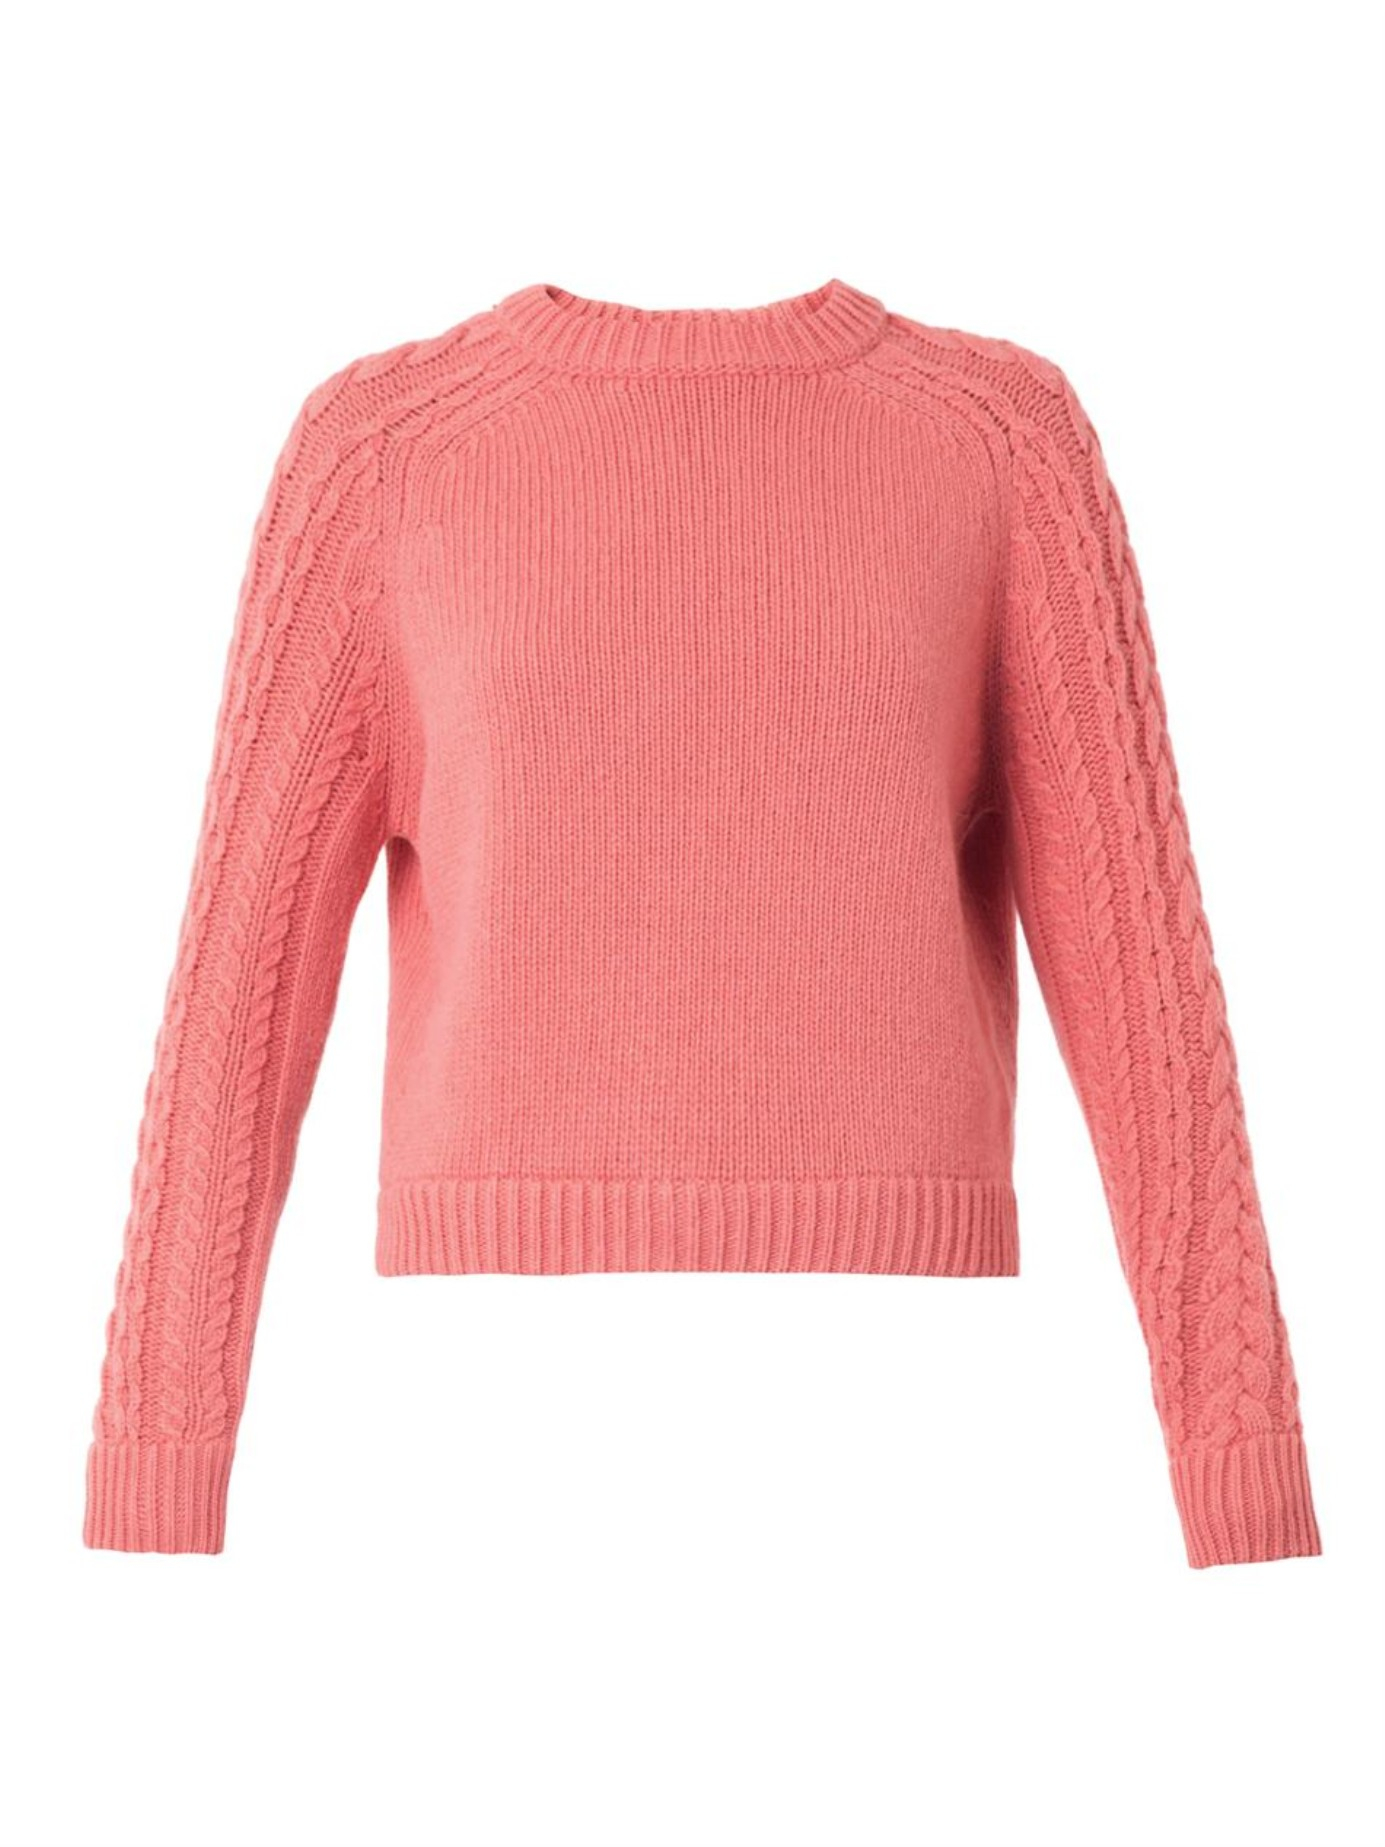 3e18d16c1135 Wedges 5cm Pink   - See By Chloe Wool Blend Knit Sweater In Pink ...